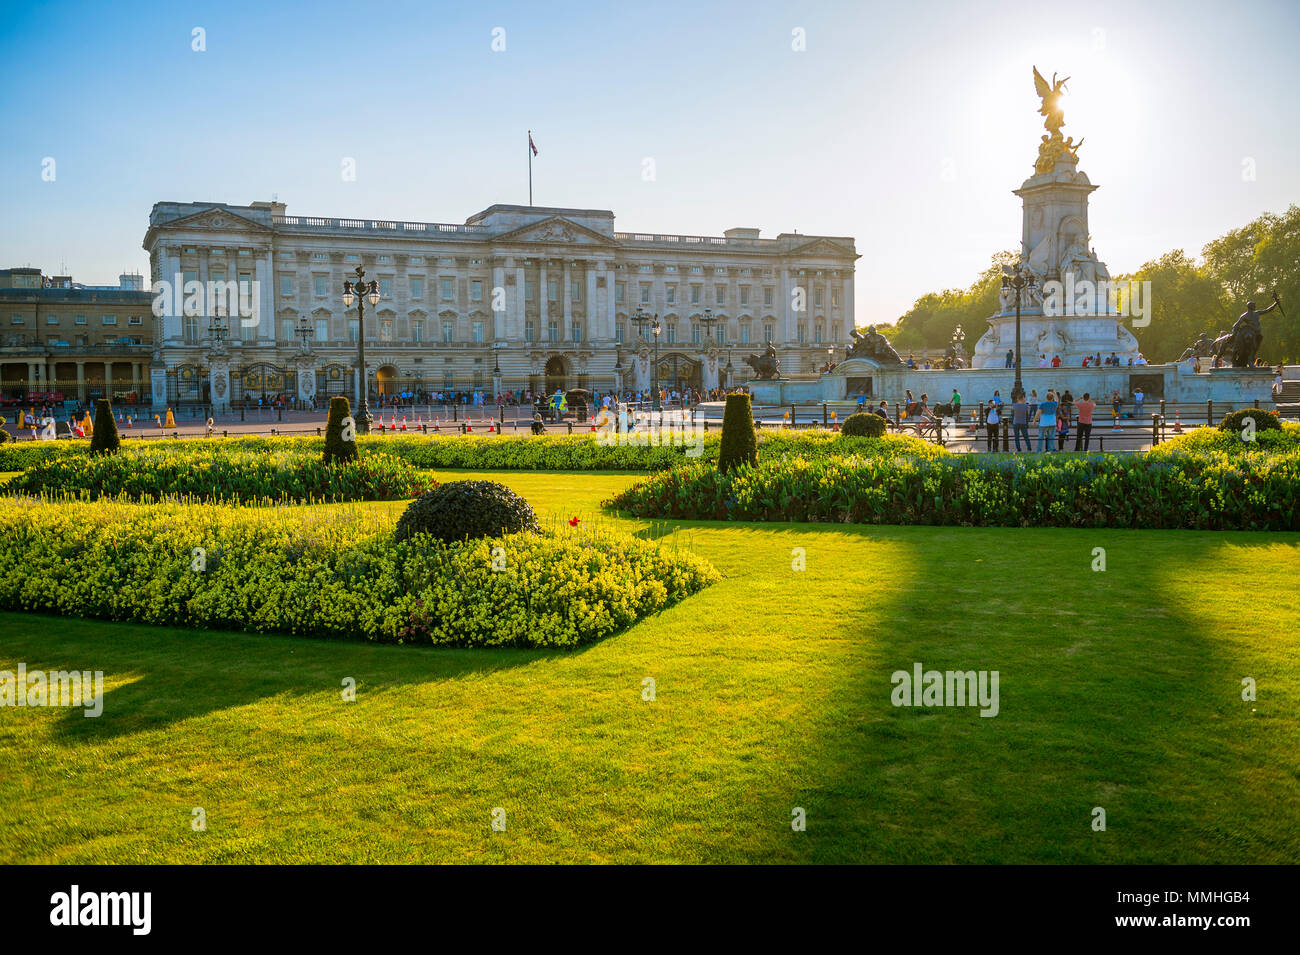 LONDON - MAY 7, 2018: View across flower beds in front of Buckingham Palace at sunset. - Stock Image